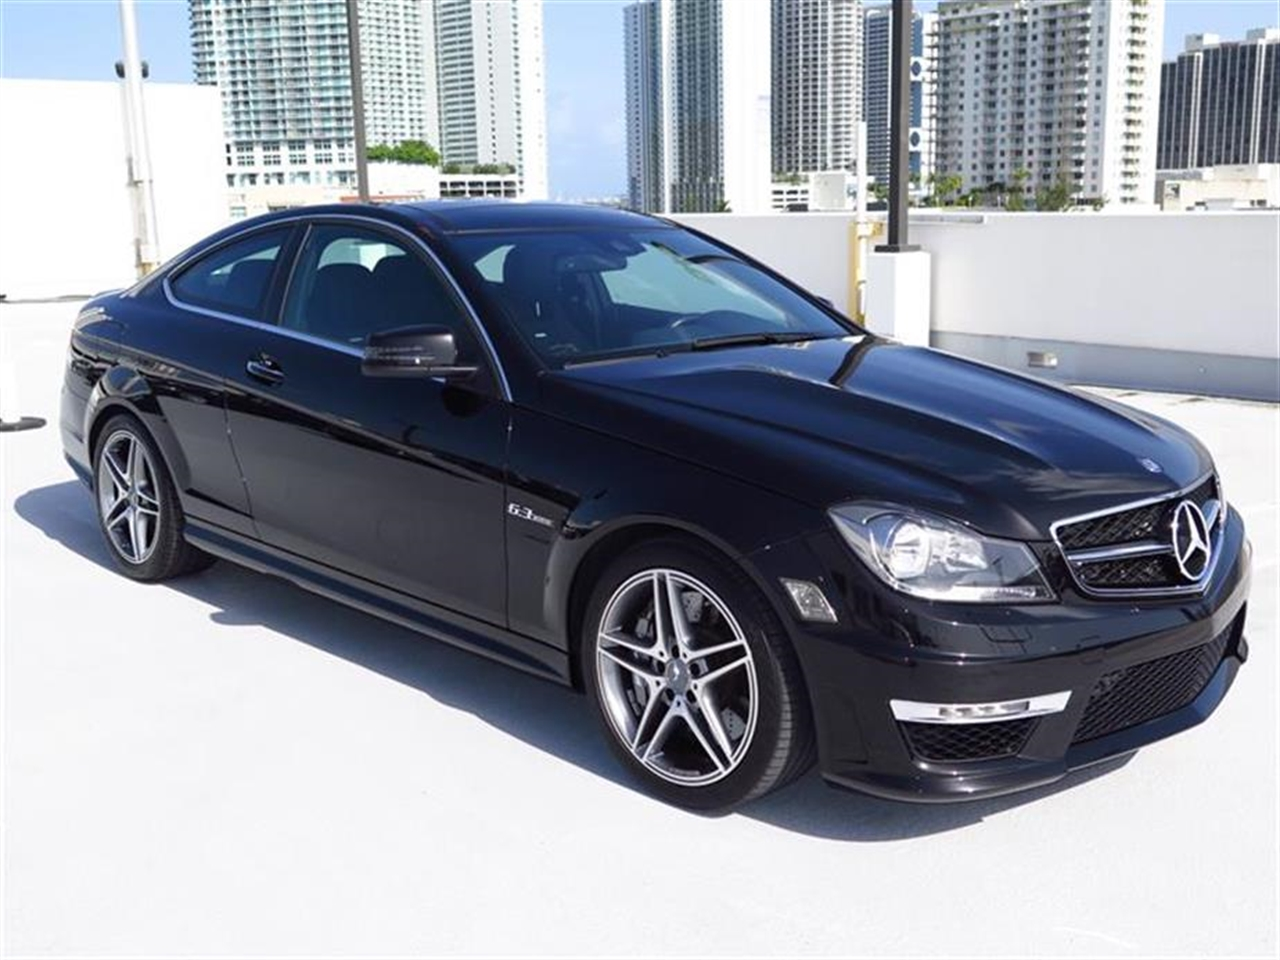 2013 Mercedes C-CLASS 2dr Cpe C63 AMG RWD 7411 miles 58 central controller display wretractable